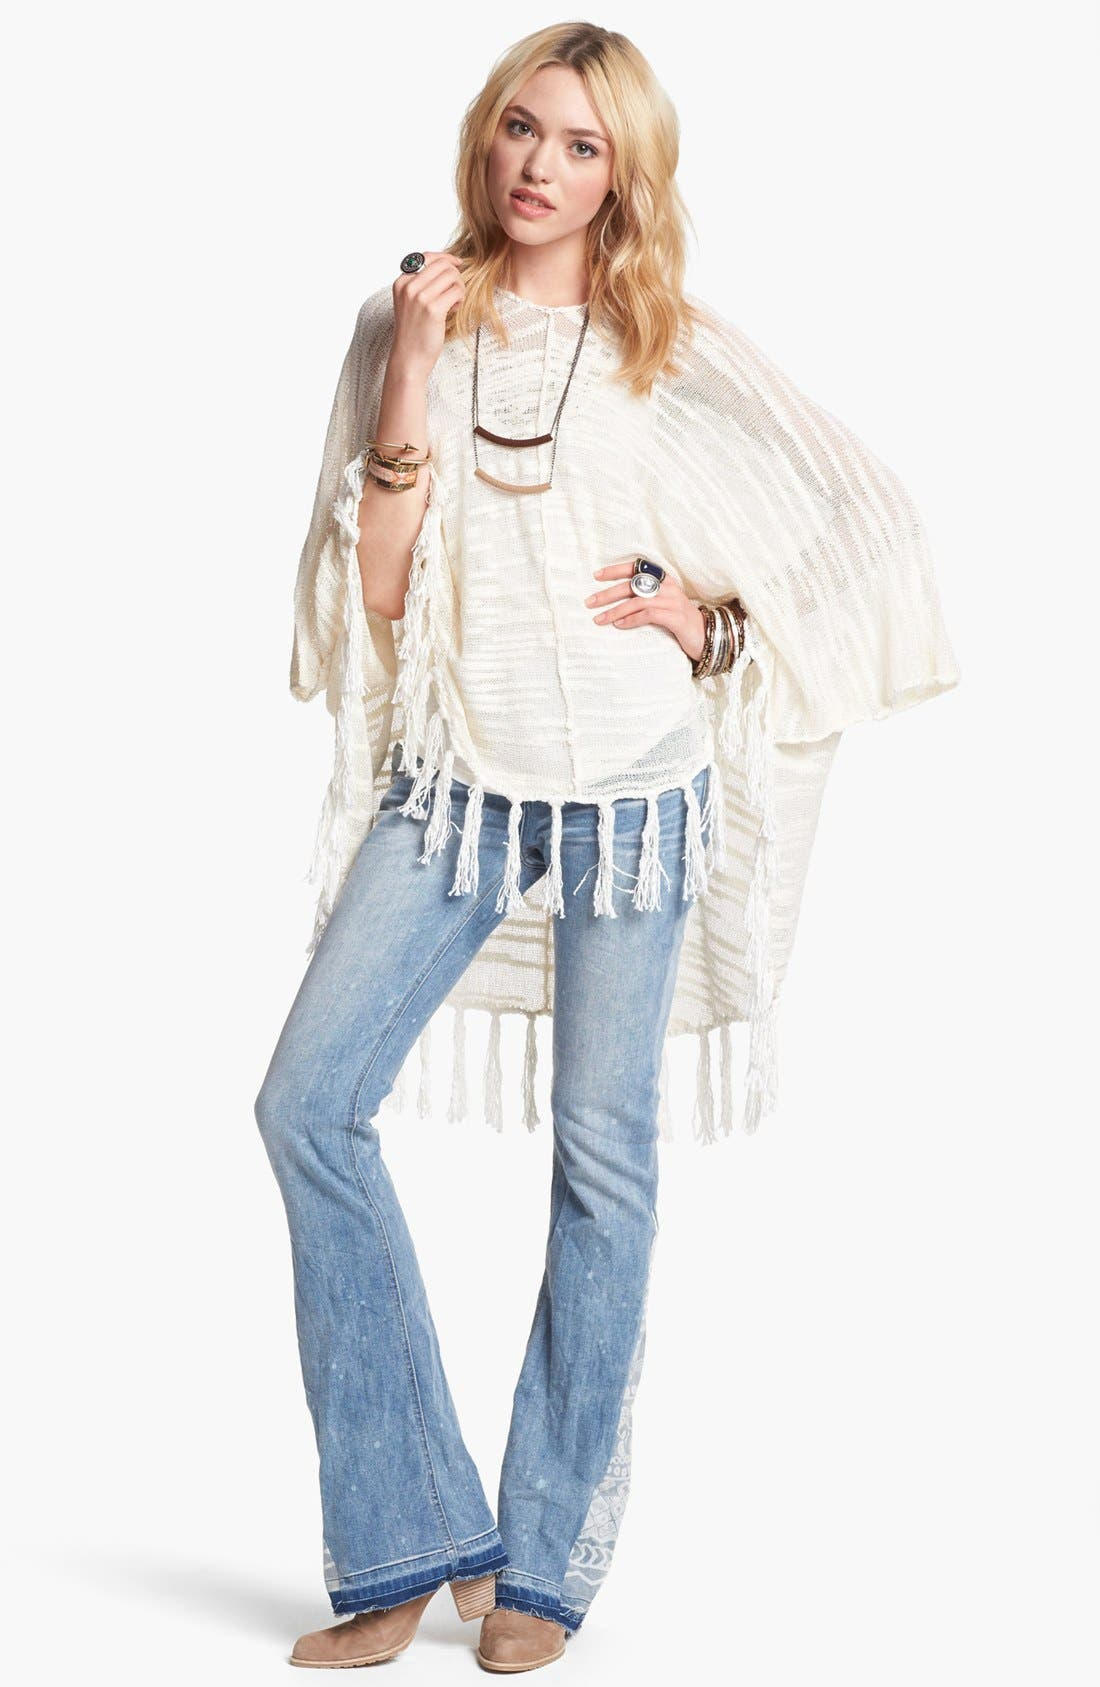 Alternate Image 1 Selected - Free People Poncho & Jeans